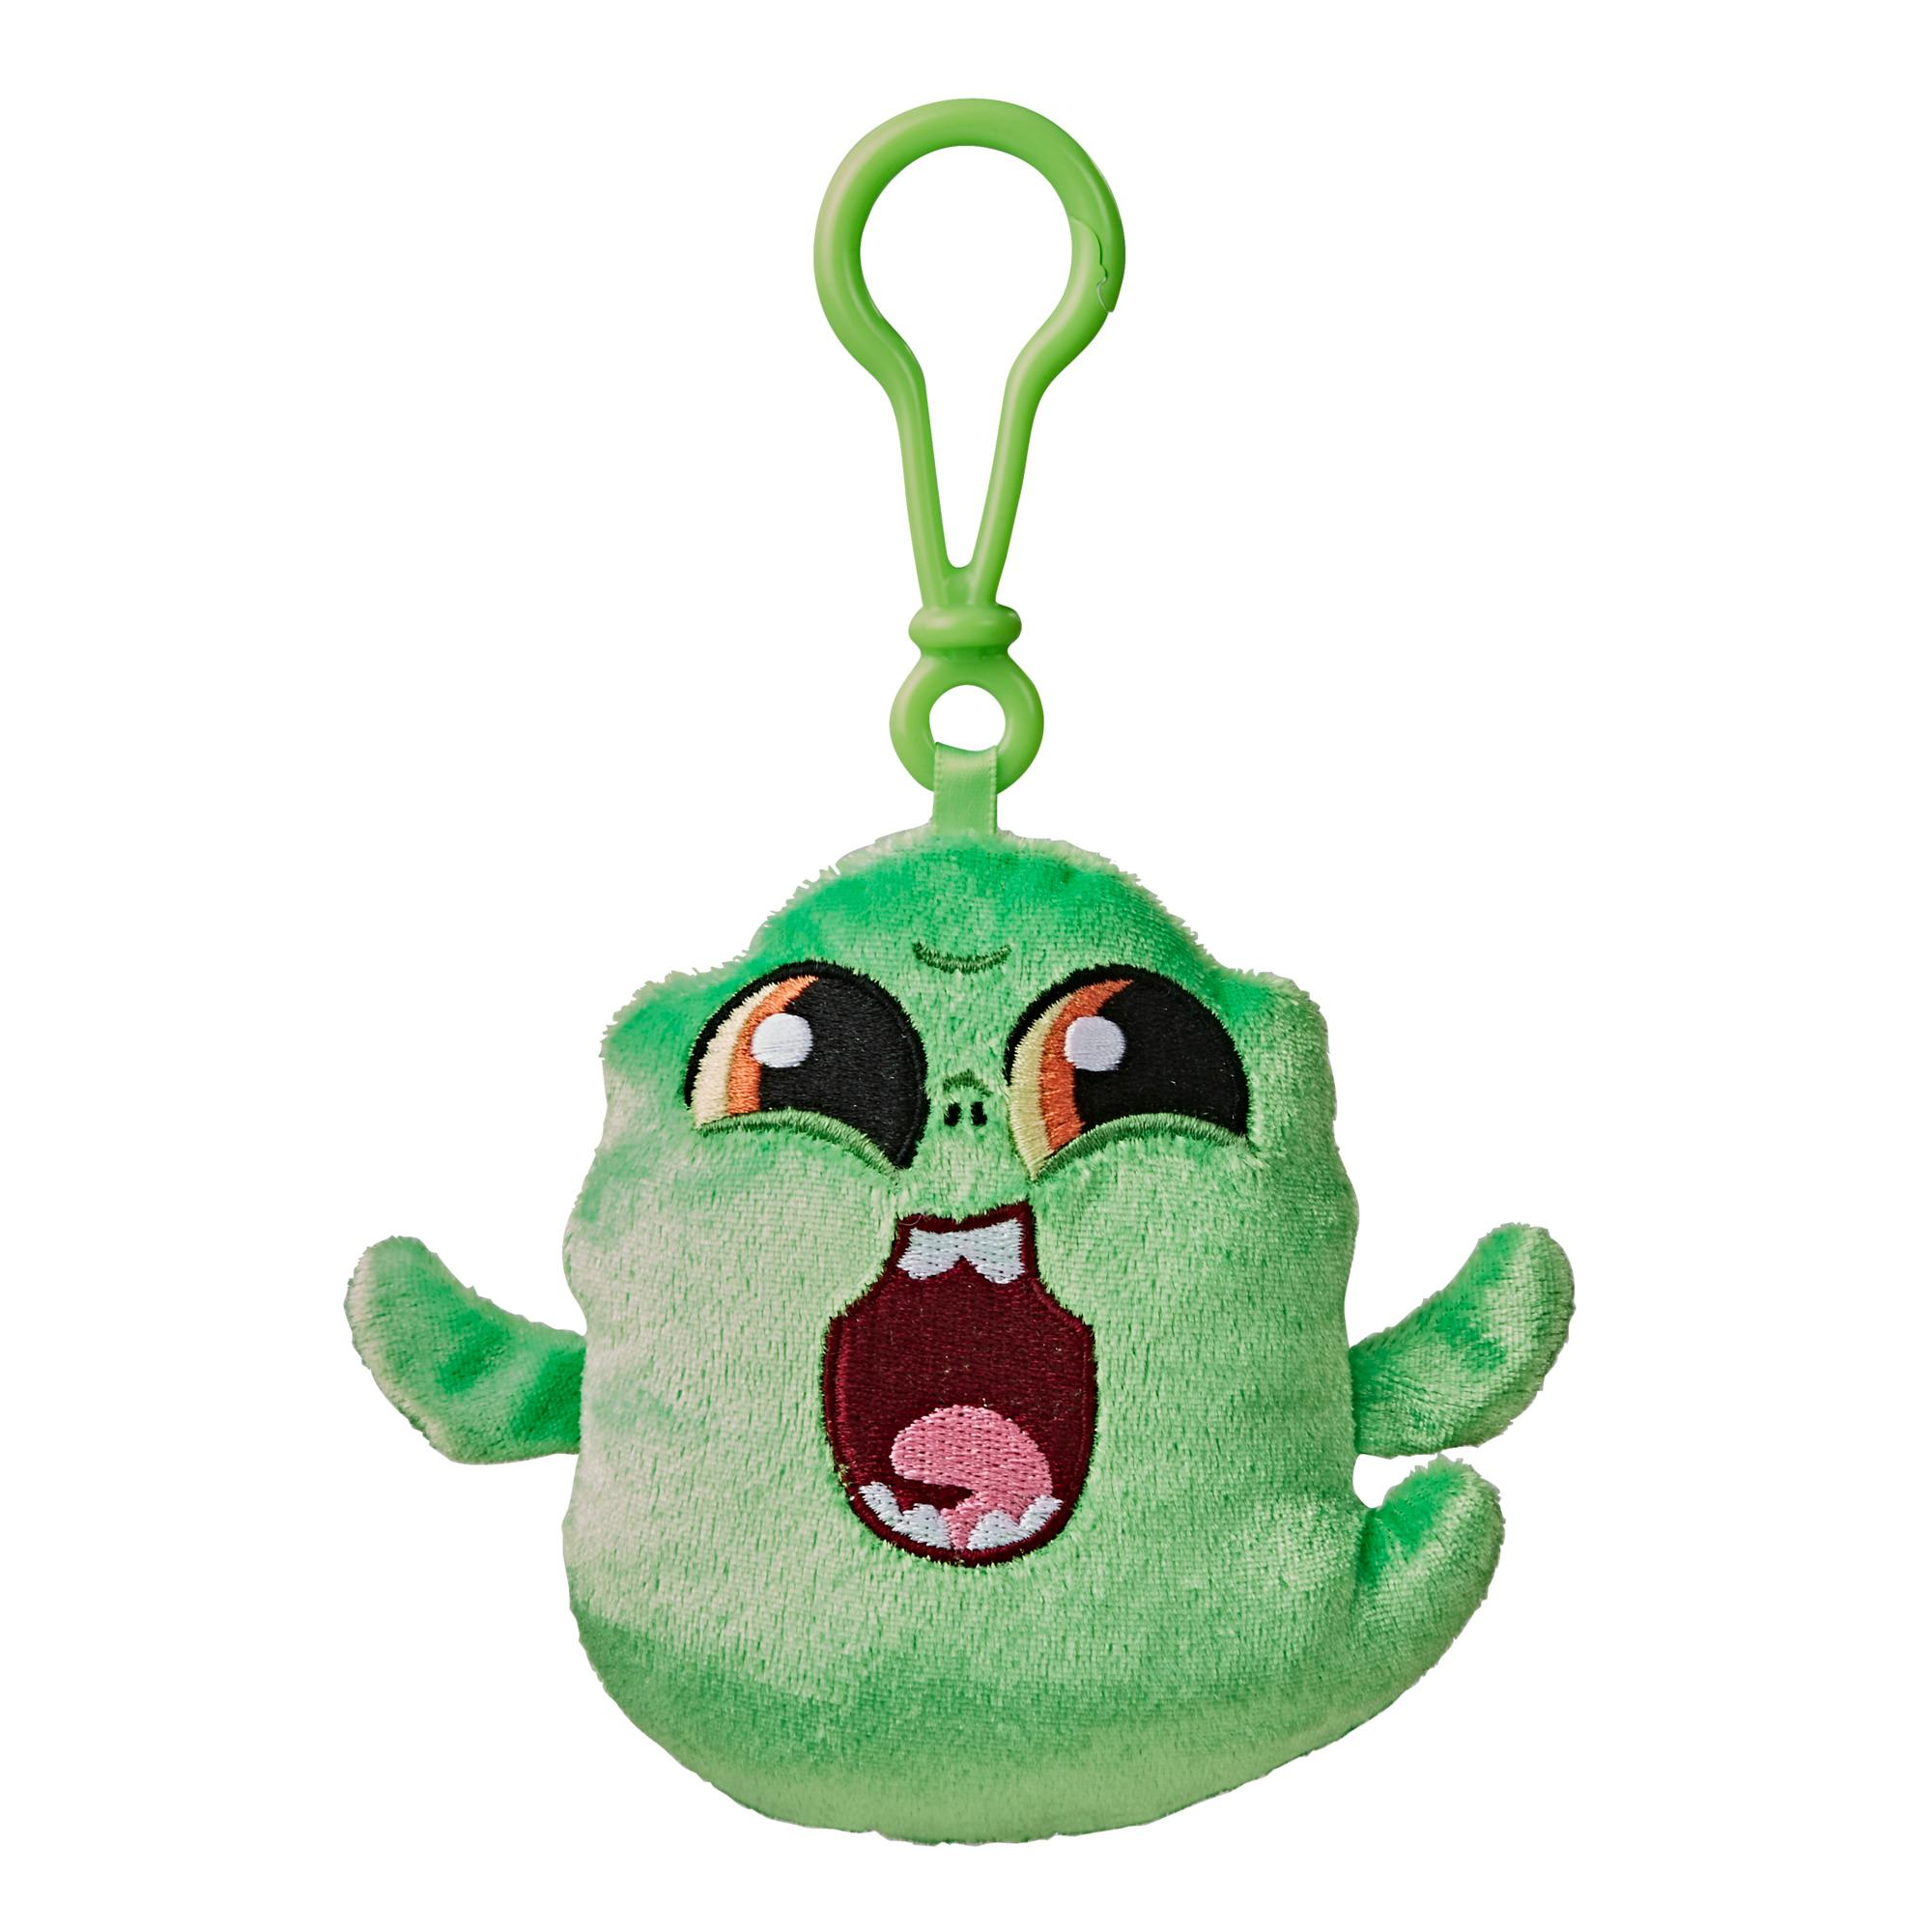 Ghostbusters Paranormal Plushies Slimer Stuffed Ghost Cuddly Soft Toy for Kids Ages 4 and Up Naptime Snuggle Time Plush